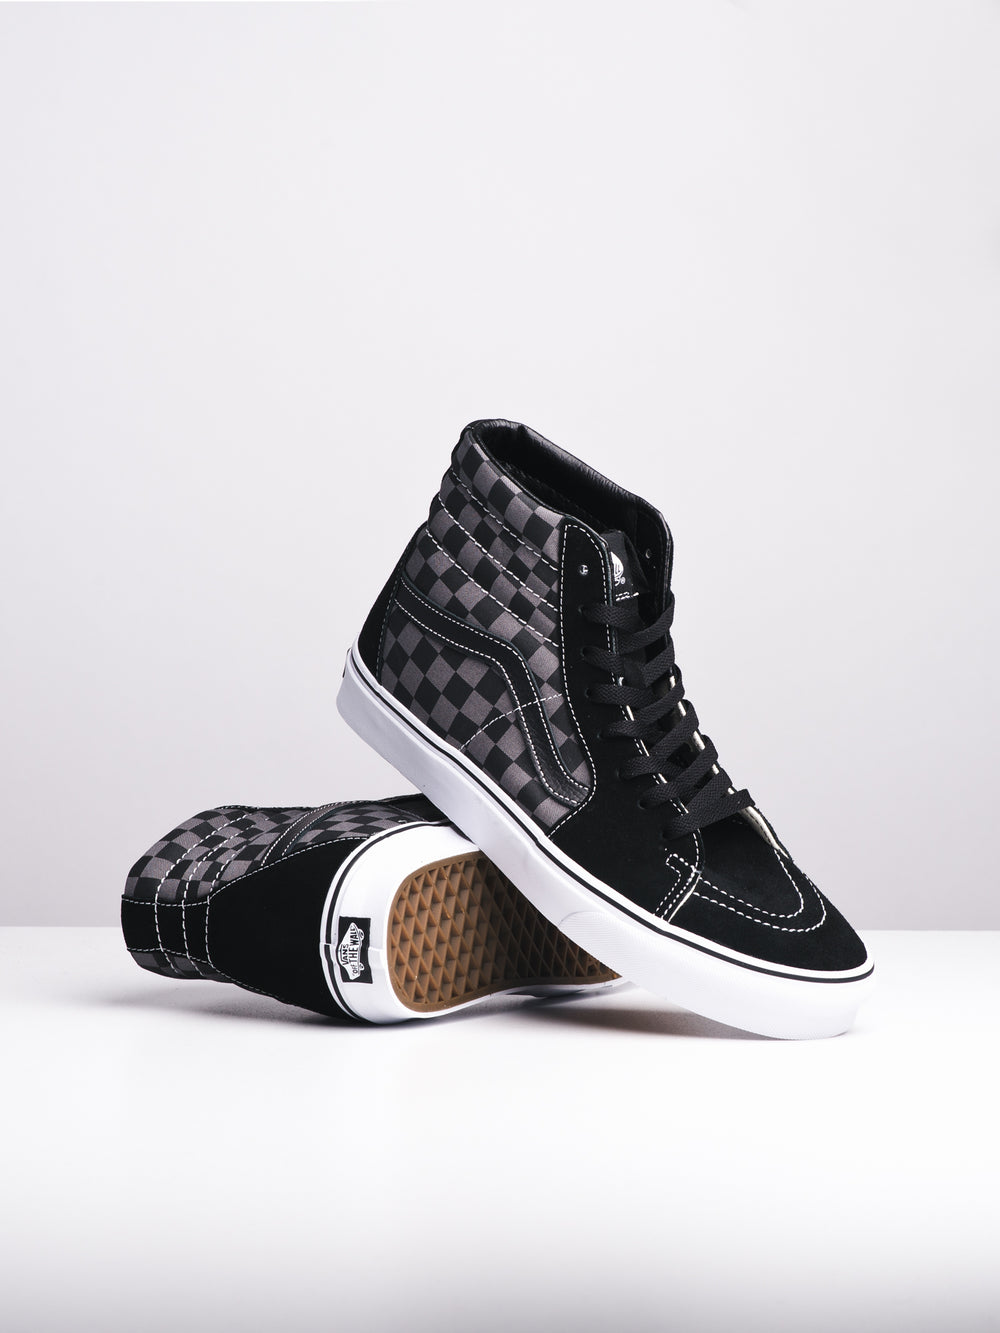 MENS SK8 HI - BLK/PEW CHECKER - CLEARANCE